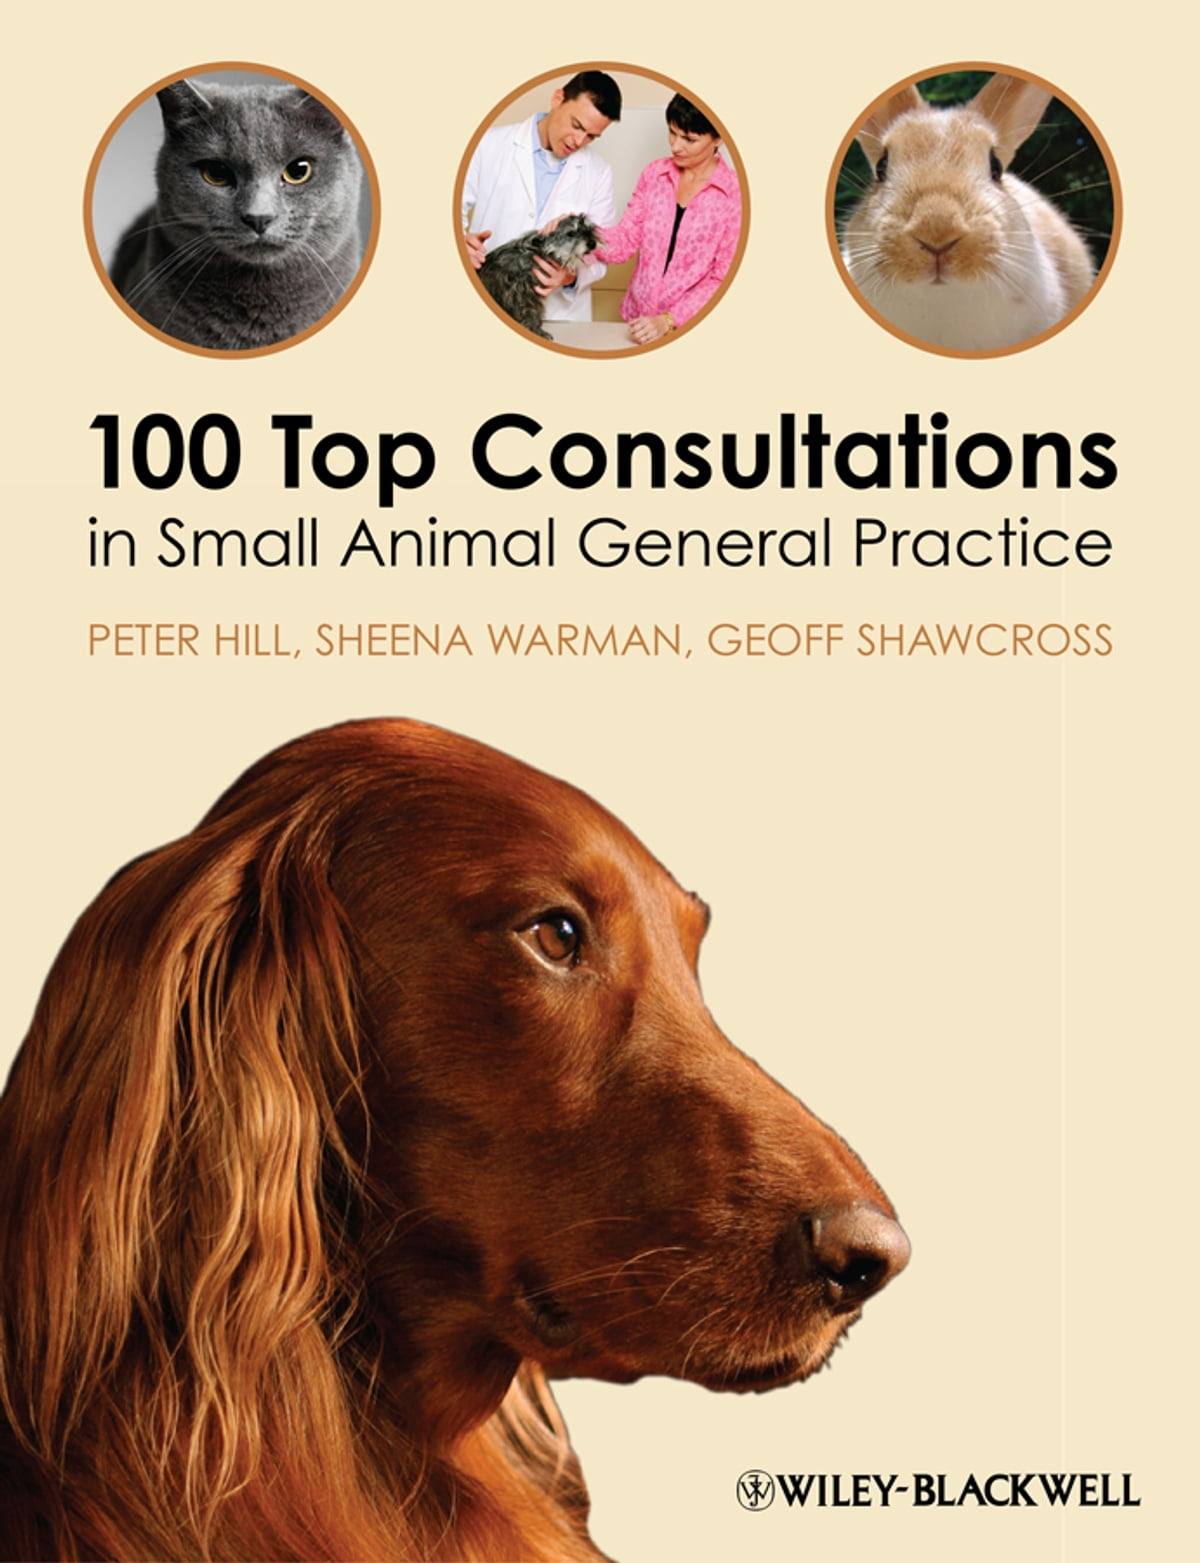 100 Top Consultations in Small Animal General Practice eBook by Peter Hill  - 9781444393354 | Rakuten Kobo